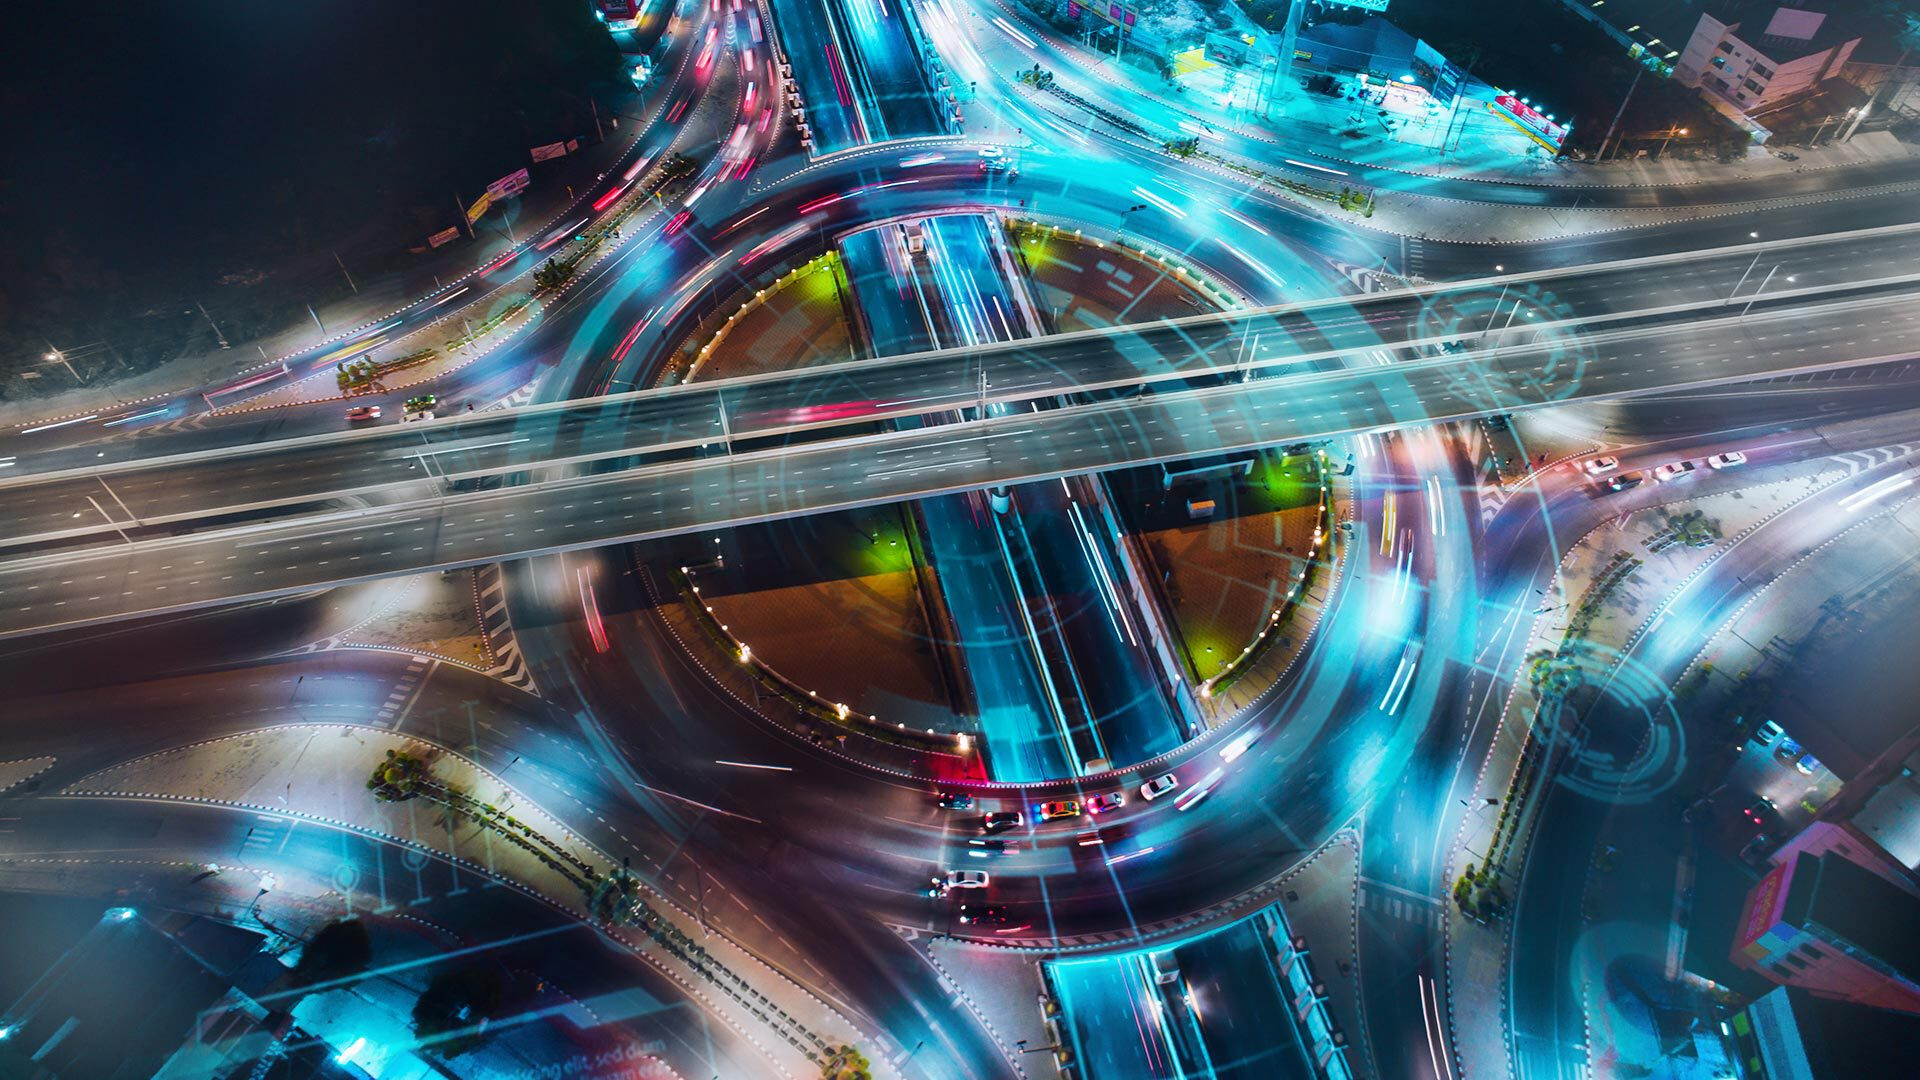 Motorway junction at night from a bird's eye view